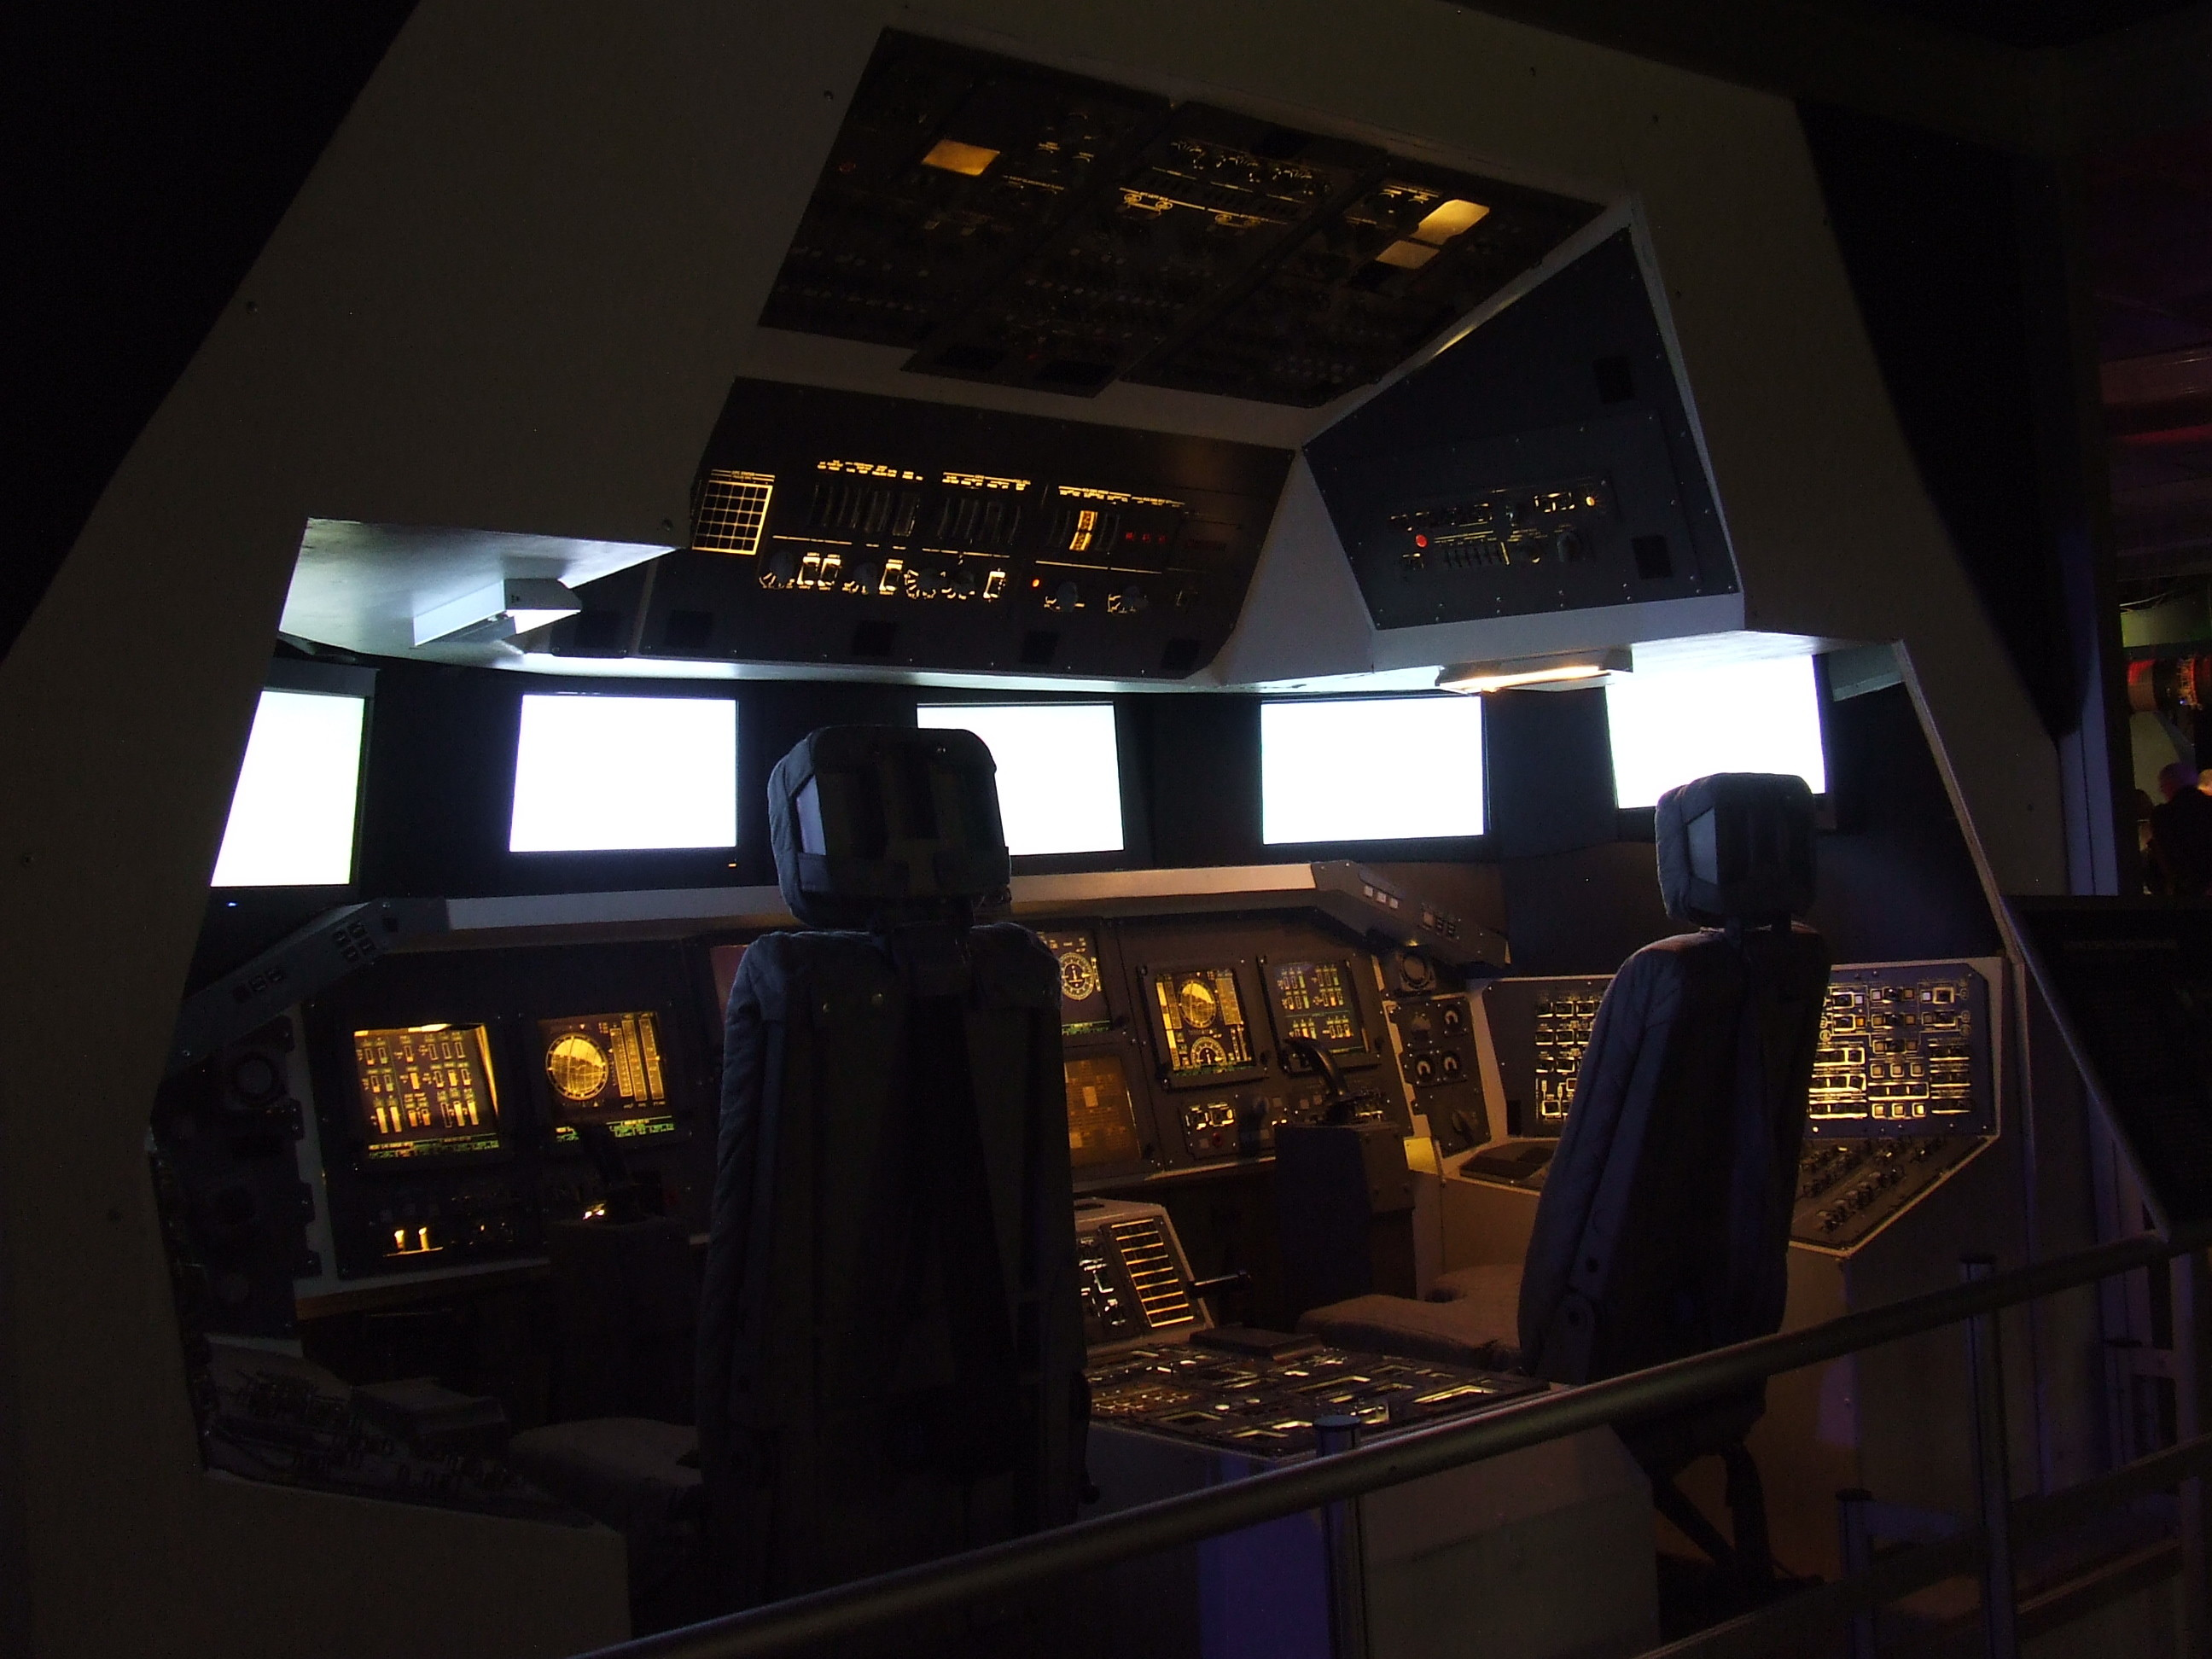 2592x1944 File:Gateway to space 2016, Budapest, the Space Shuttle cockpit.jpg